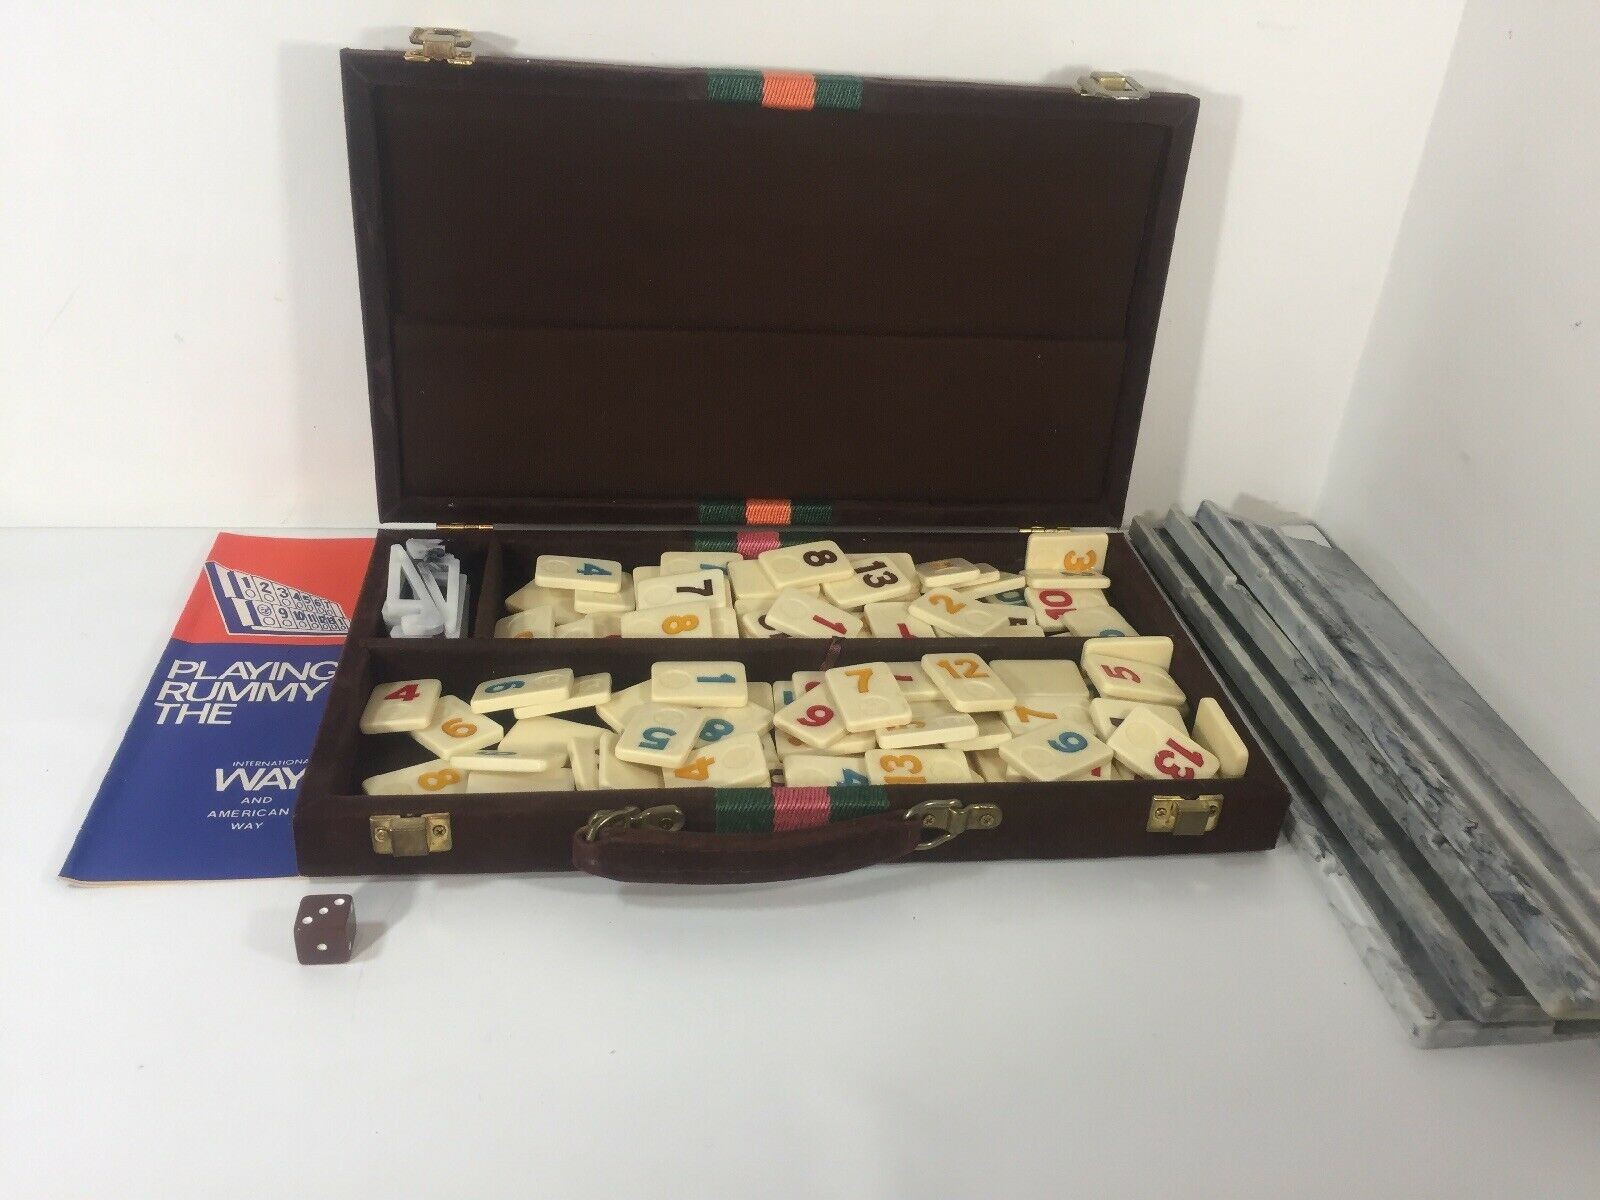 Vtg Rummy Tile  gioco International & American Way Corduroy Case Early Rummikub  rivenditore di fitness